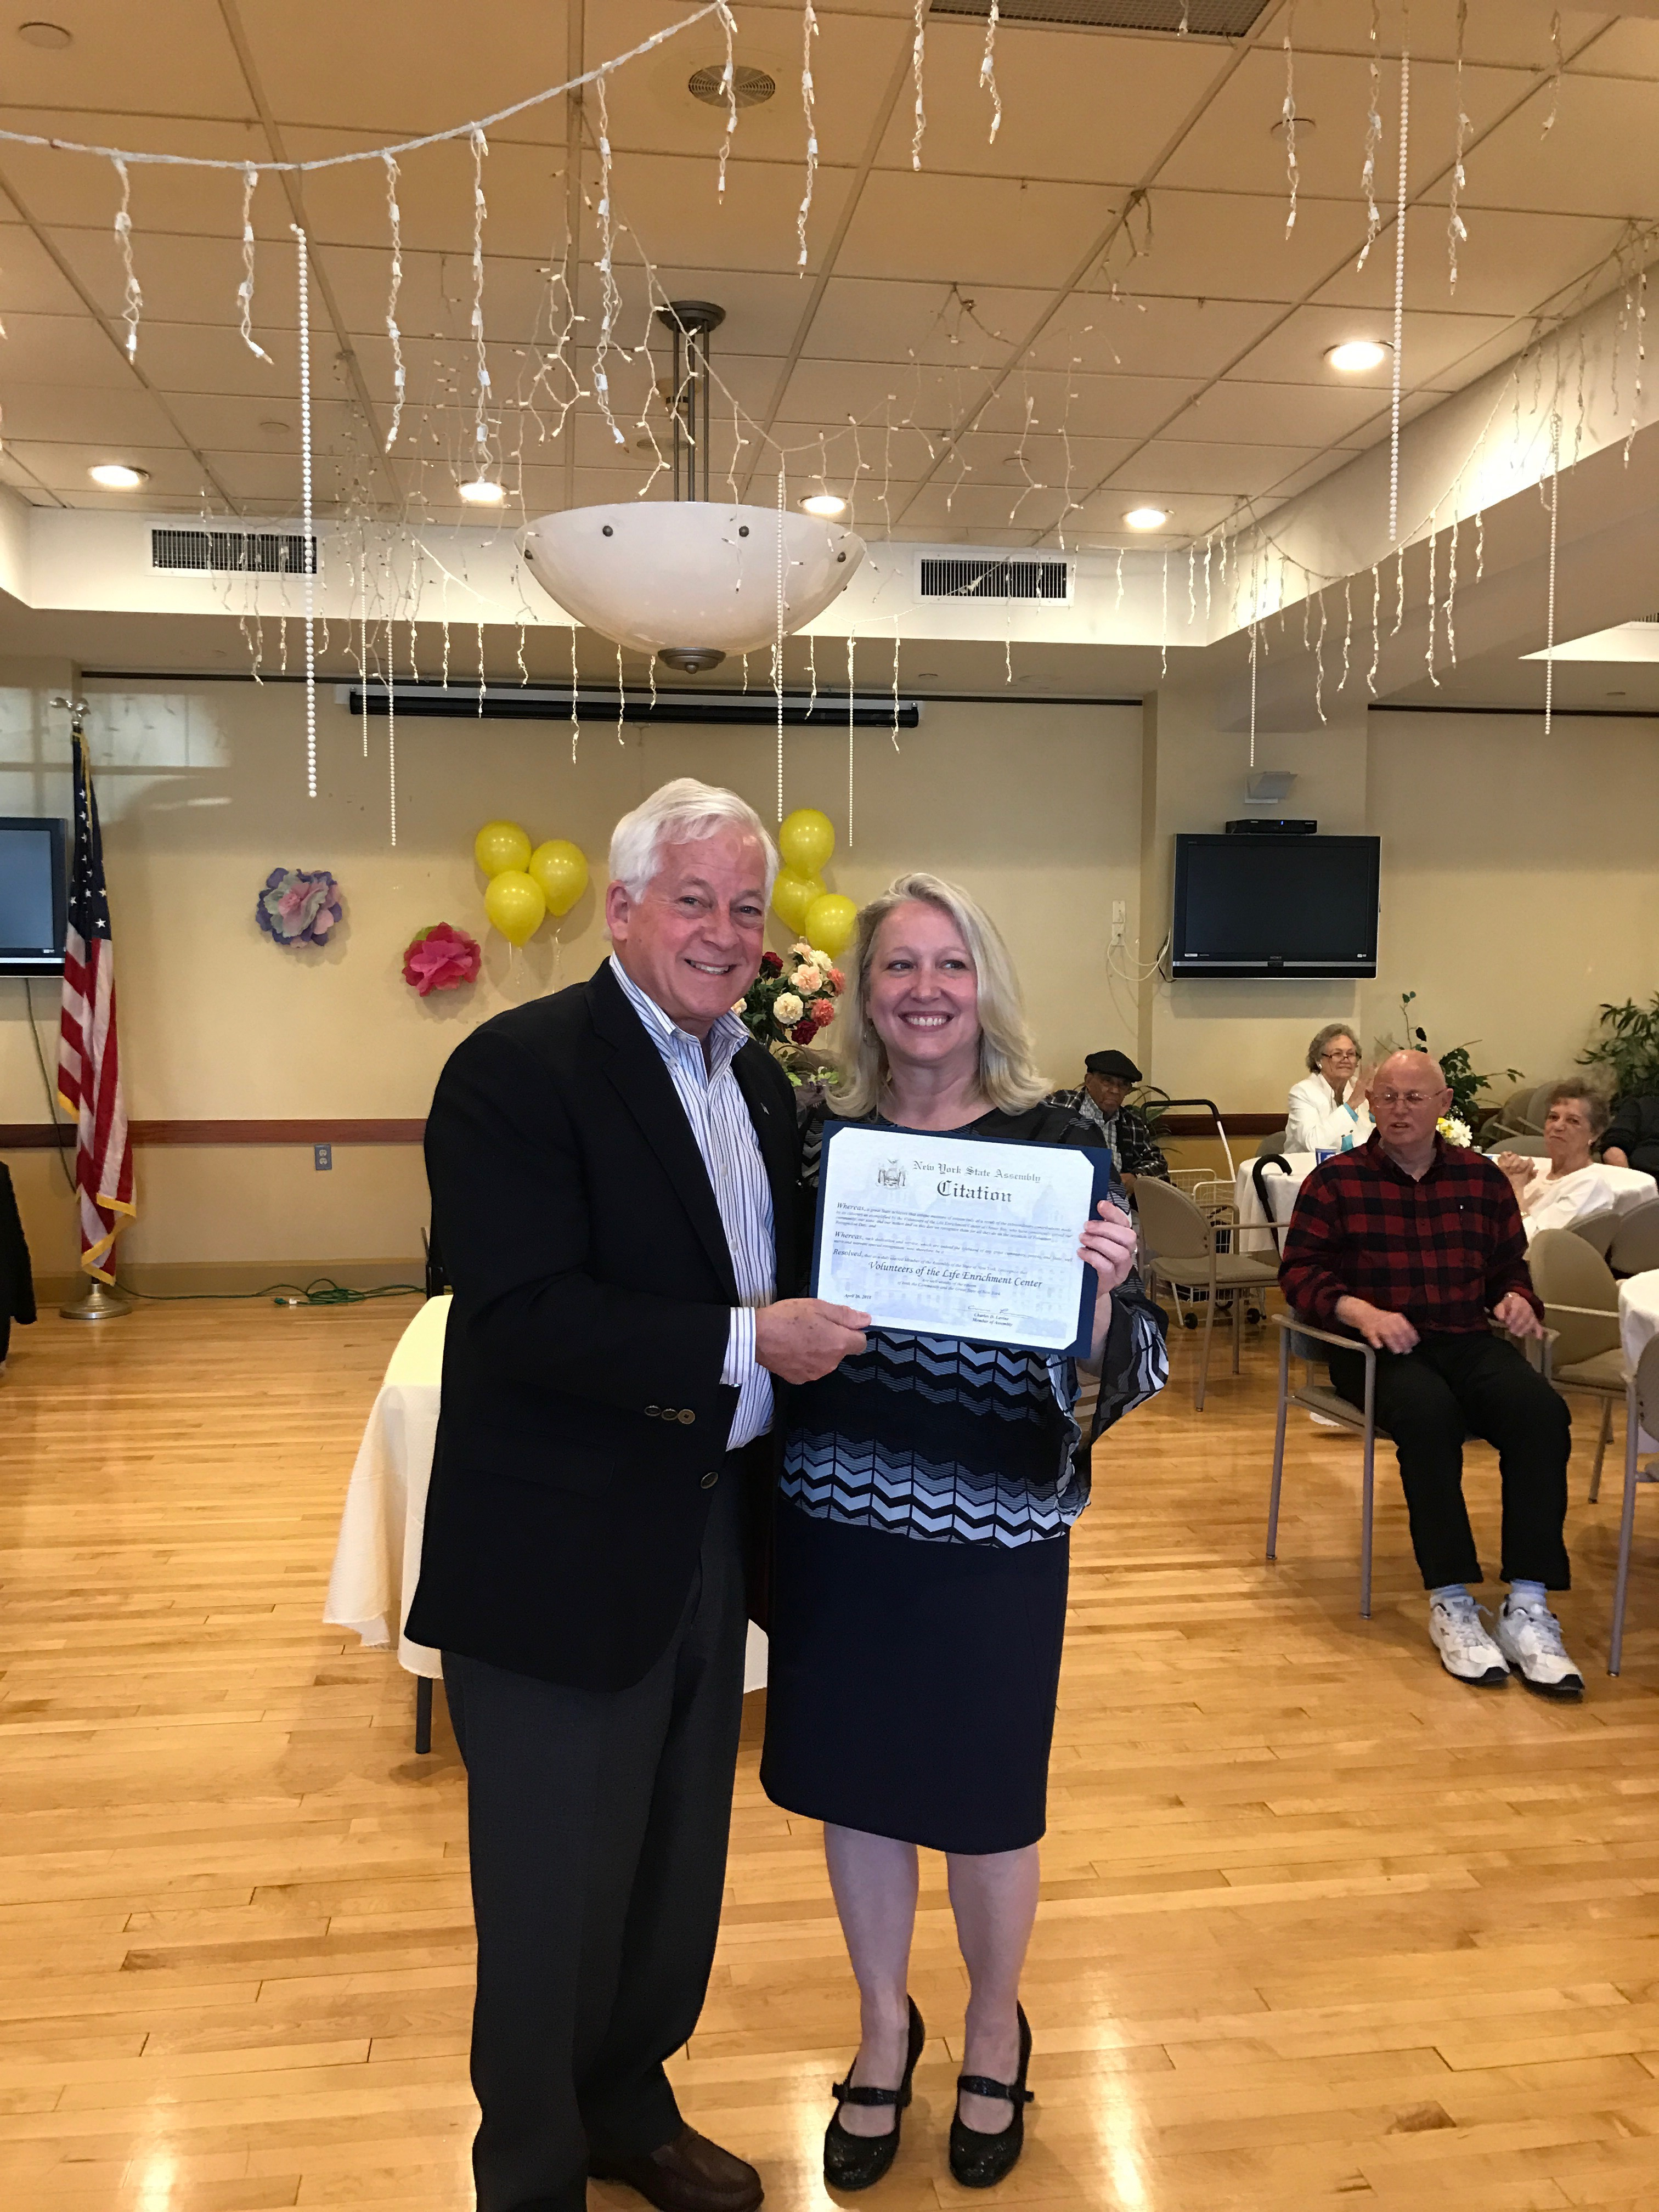 Assemblyman Charles D. Lavine (D-Glen Cove) was pleased to stop by The Life Enrichment Center at Oyster Bay&#39;s annual Volunteer Recognition Day.<br><br>&#34;It was an honor for me to present Judy Palumbo with a citation recognizing all of the wonderful volunteers that help make the Life Enrichment Center one of the best senior citizen centers in my district.&#34; said Lavine.<br><br>Pictured are Assemblyman Charles Lavine and Judy Palumbo, Executive Director of The Life Enrichment Center at Oyster Bay.